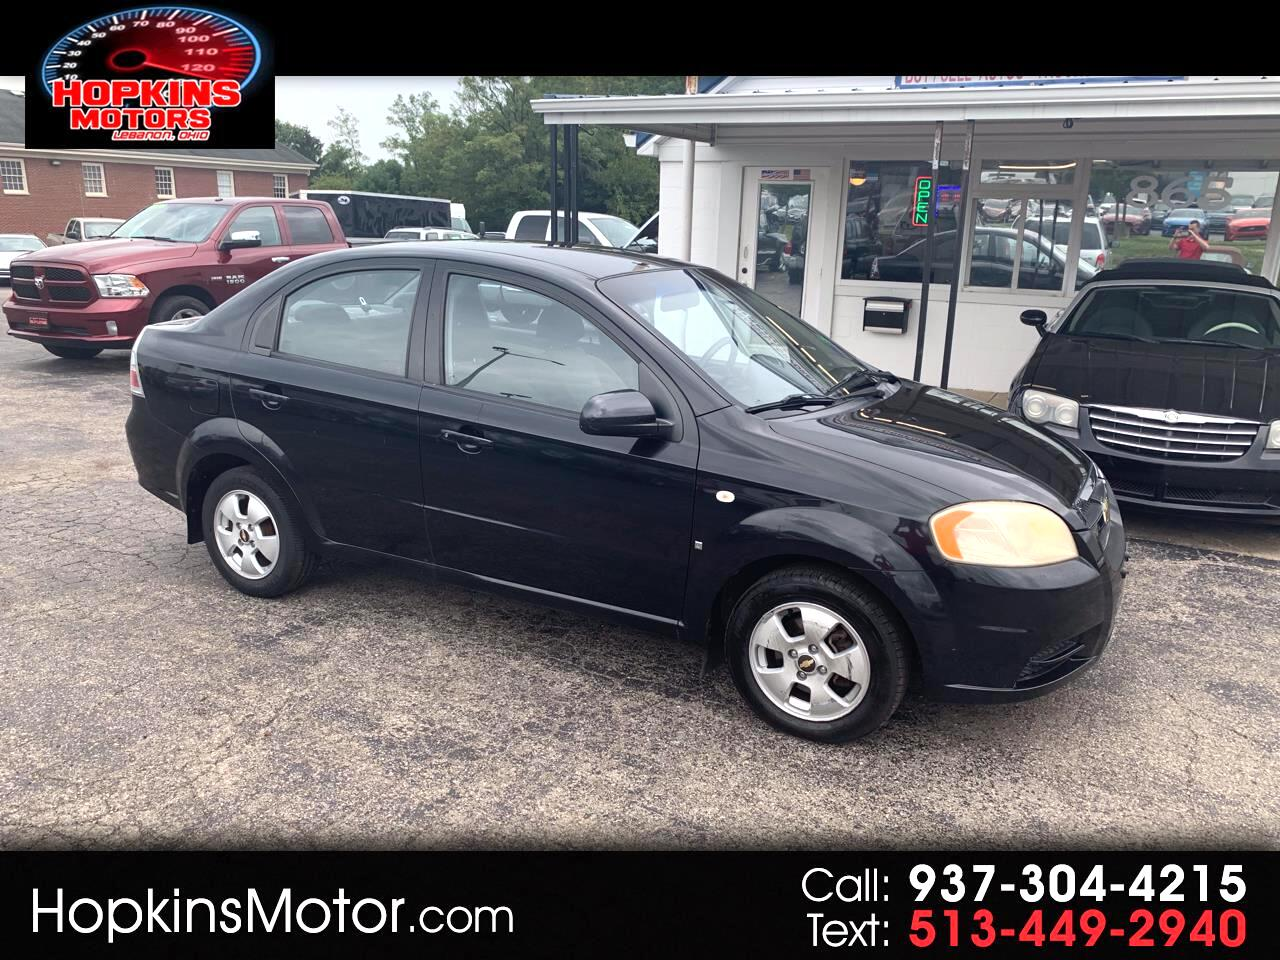 2007 Chevrolet Aveo 4dr Sdn LS